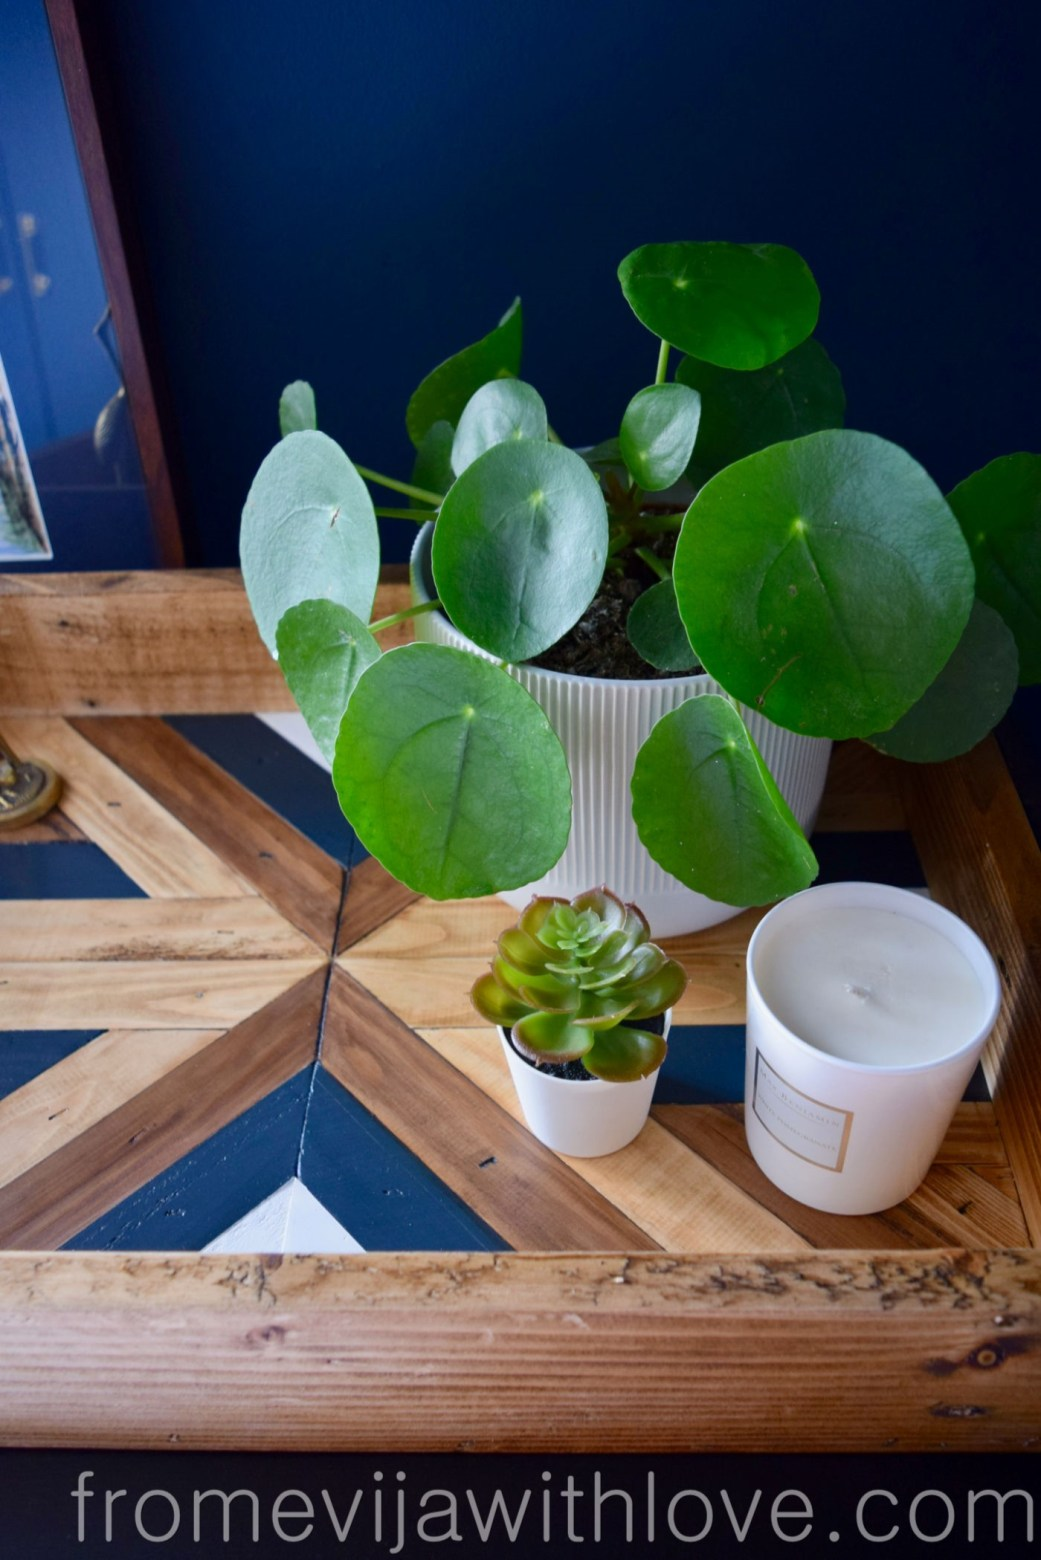 Decorative Geometric Wood Tray and Plants